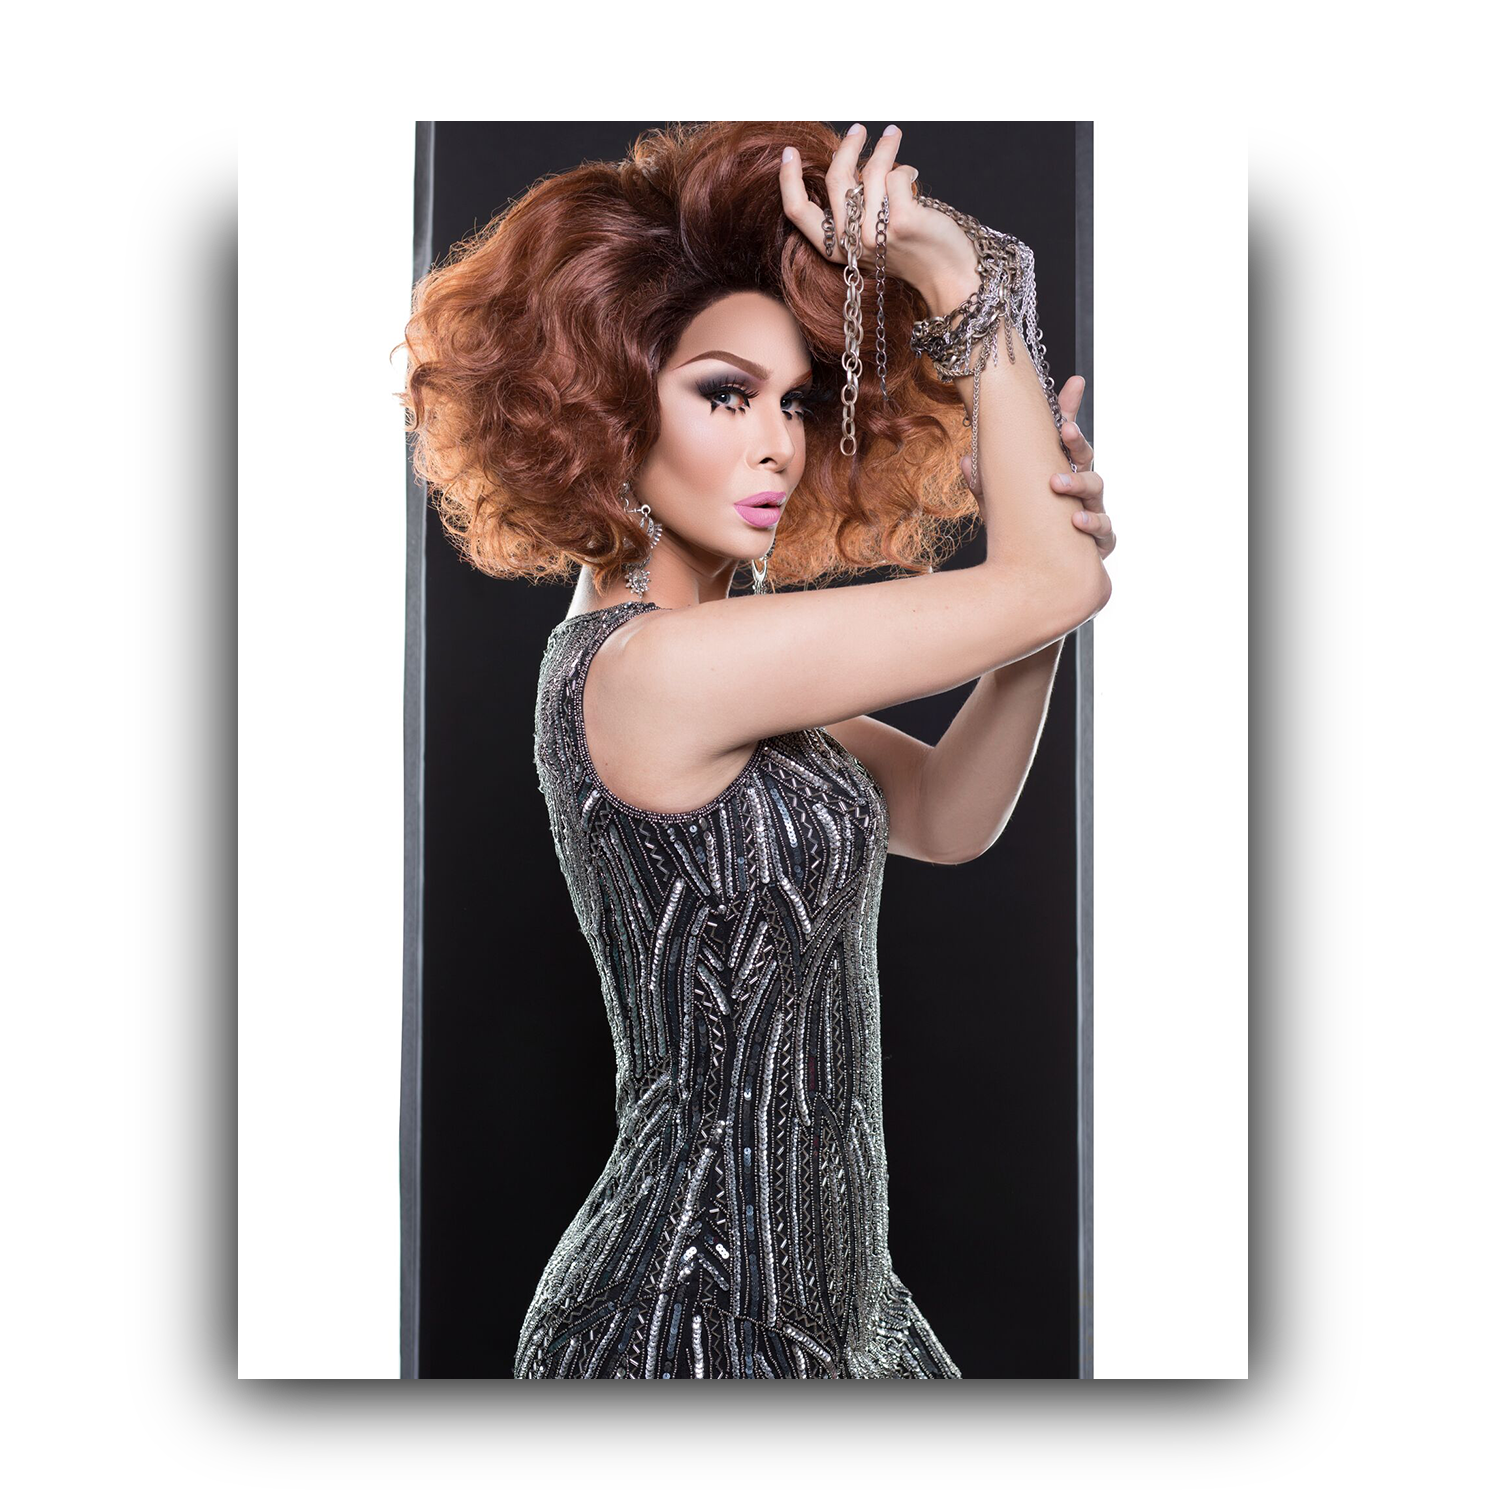 """Drag Photographer Chains Promo (8""""x10"""") SIGNED, Summer 2017 Collection"""